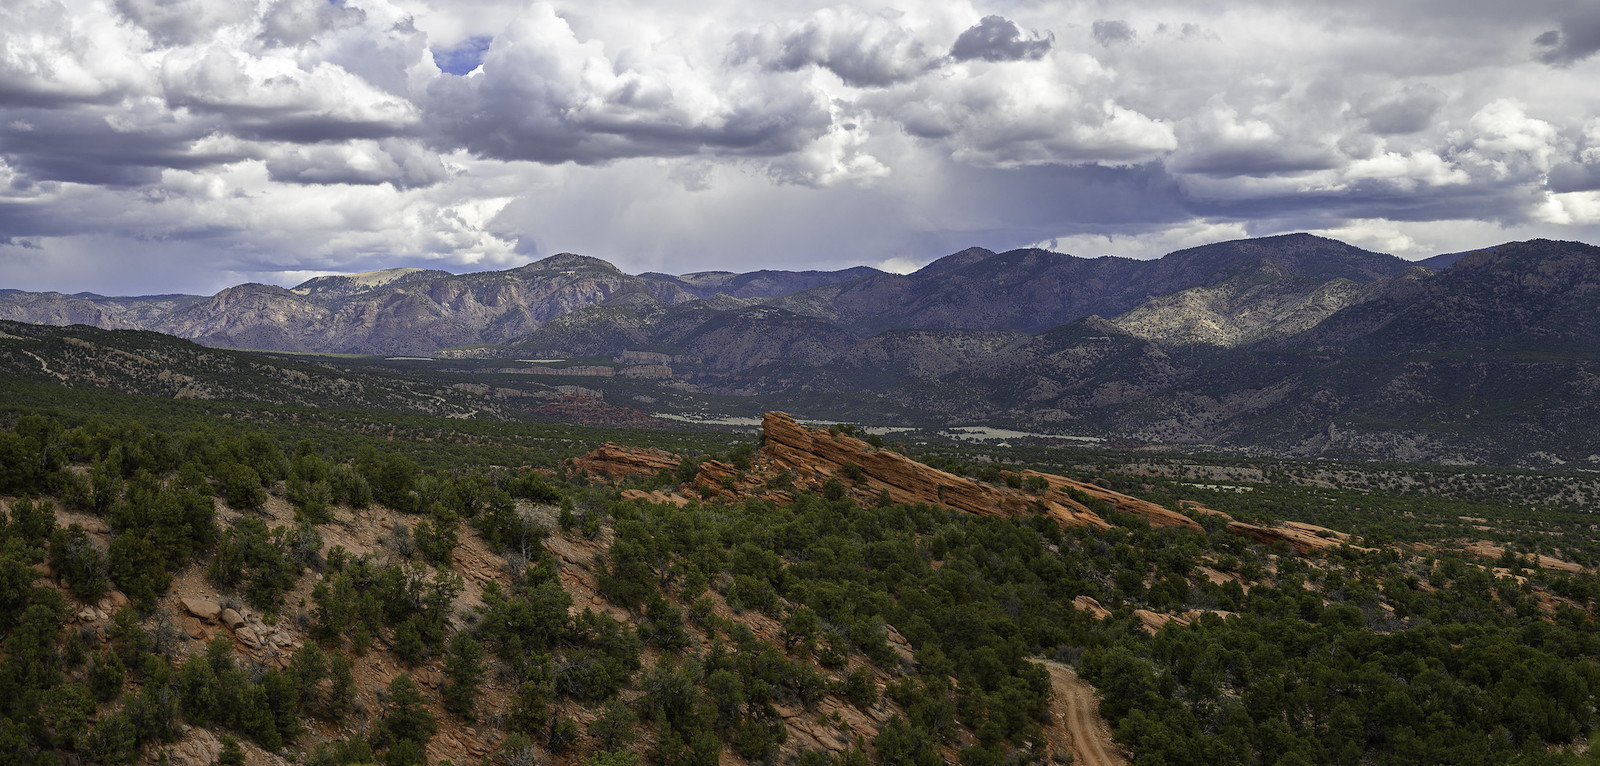 Image of a panoramic view of the Red Canyon Park in Canon City, Colorado